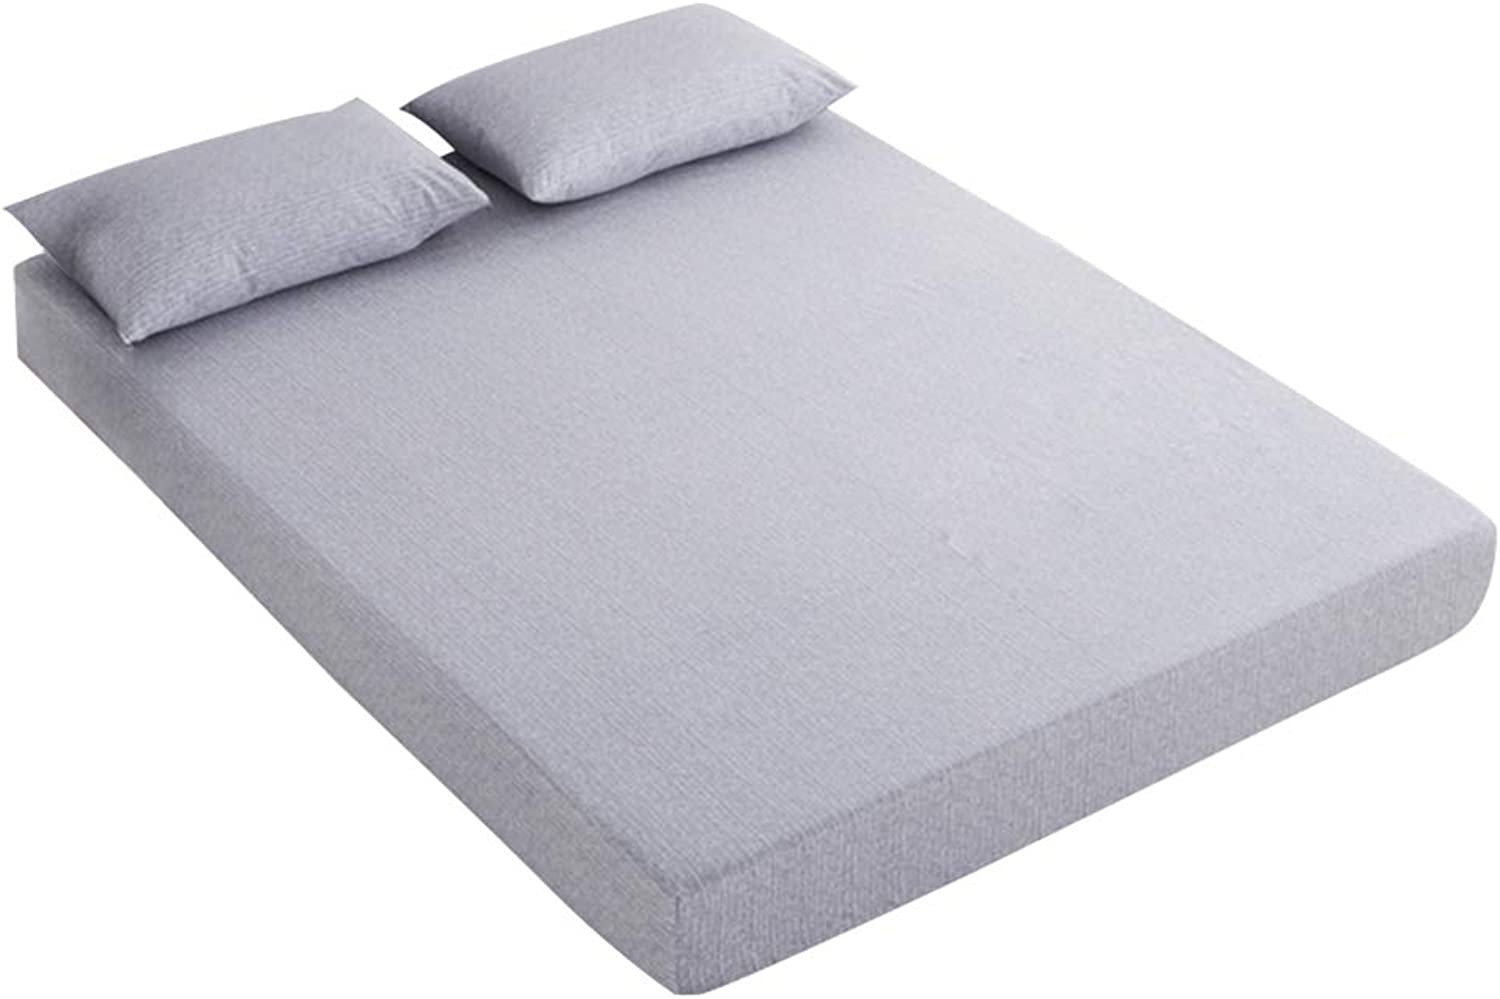 ZHAOHUI Mattress Predector Cotton Non-Slip Breathable Hypoallergenic Hygroscopic Thickened Soft Skin-Friendly, 3 colors, 3 Sizes (color   A, Size   180X200cm)